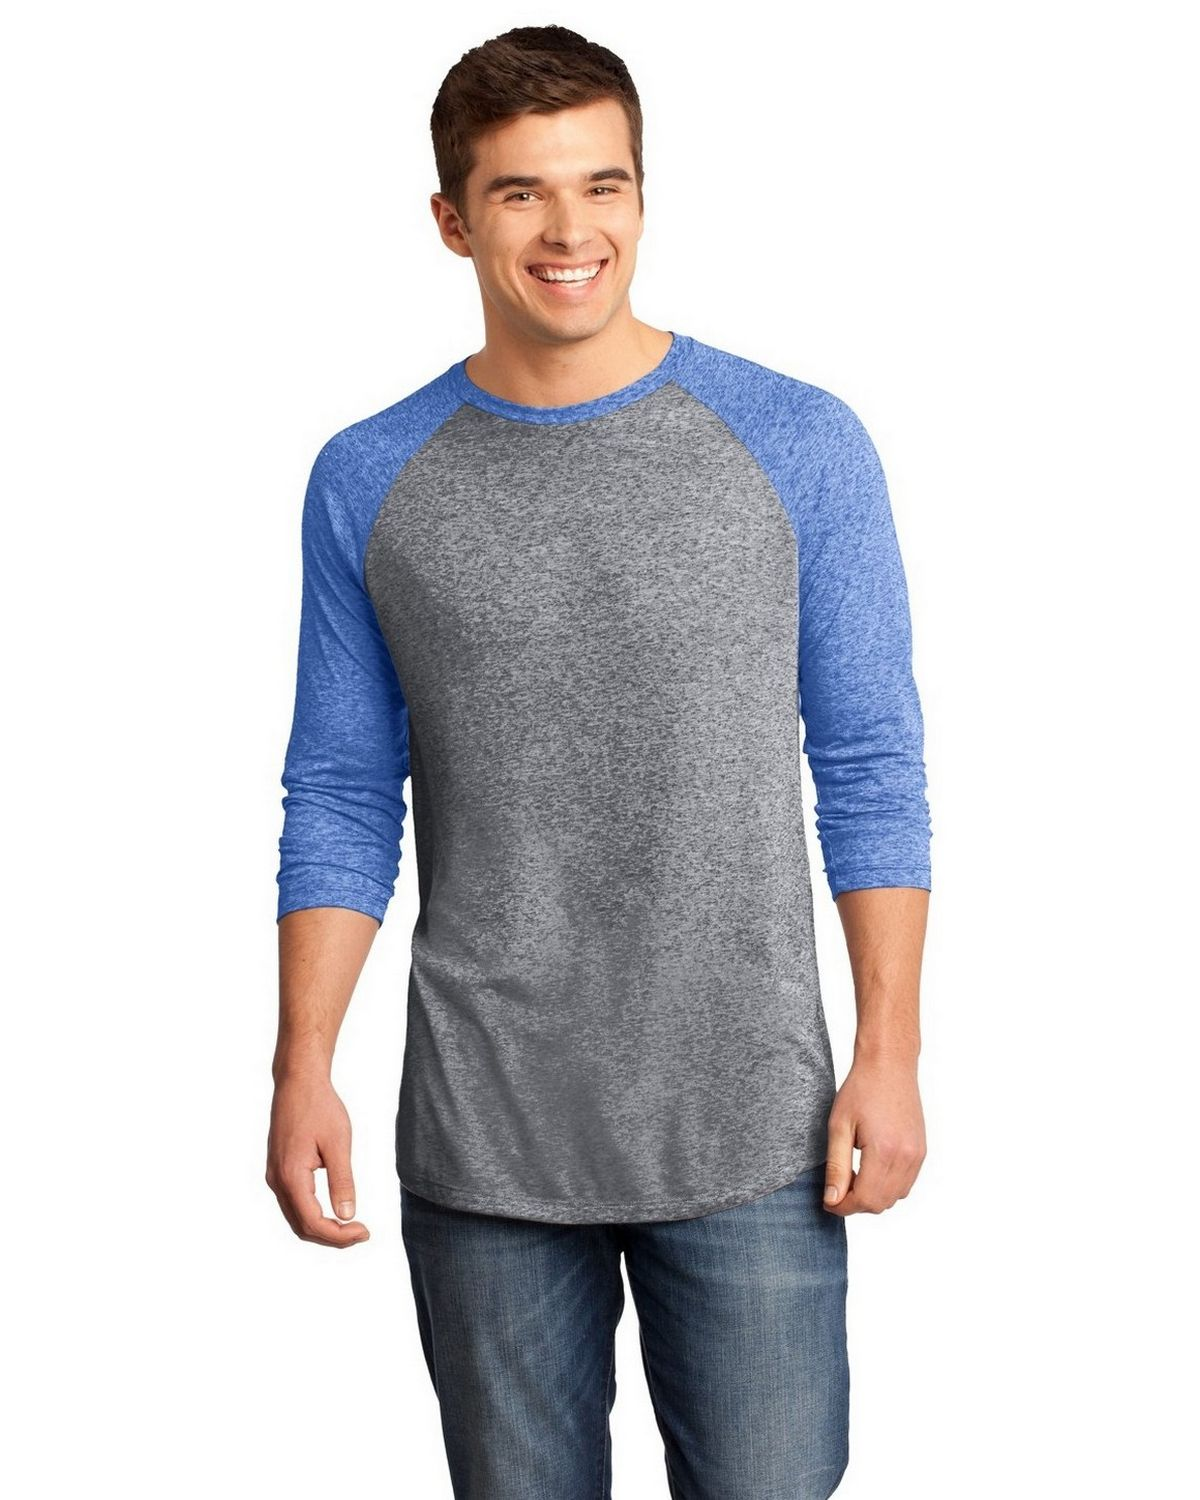 District DT162 Young Mens Microburn Raglan Tee - Deep Royal/ Heathered Nickel - XL DT162